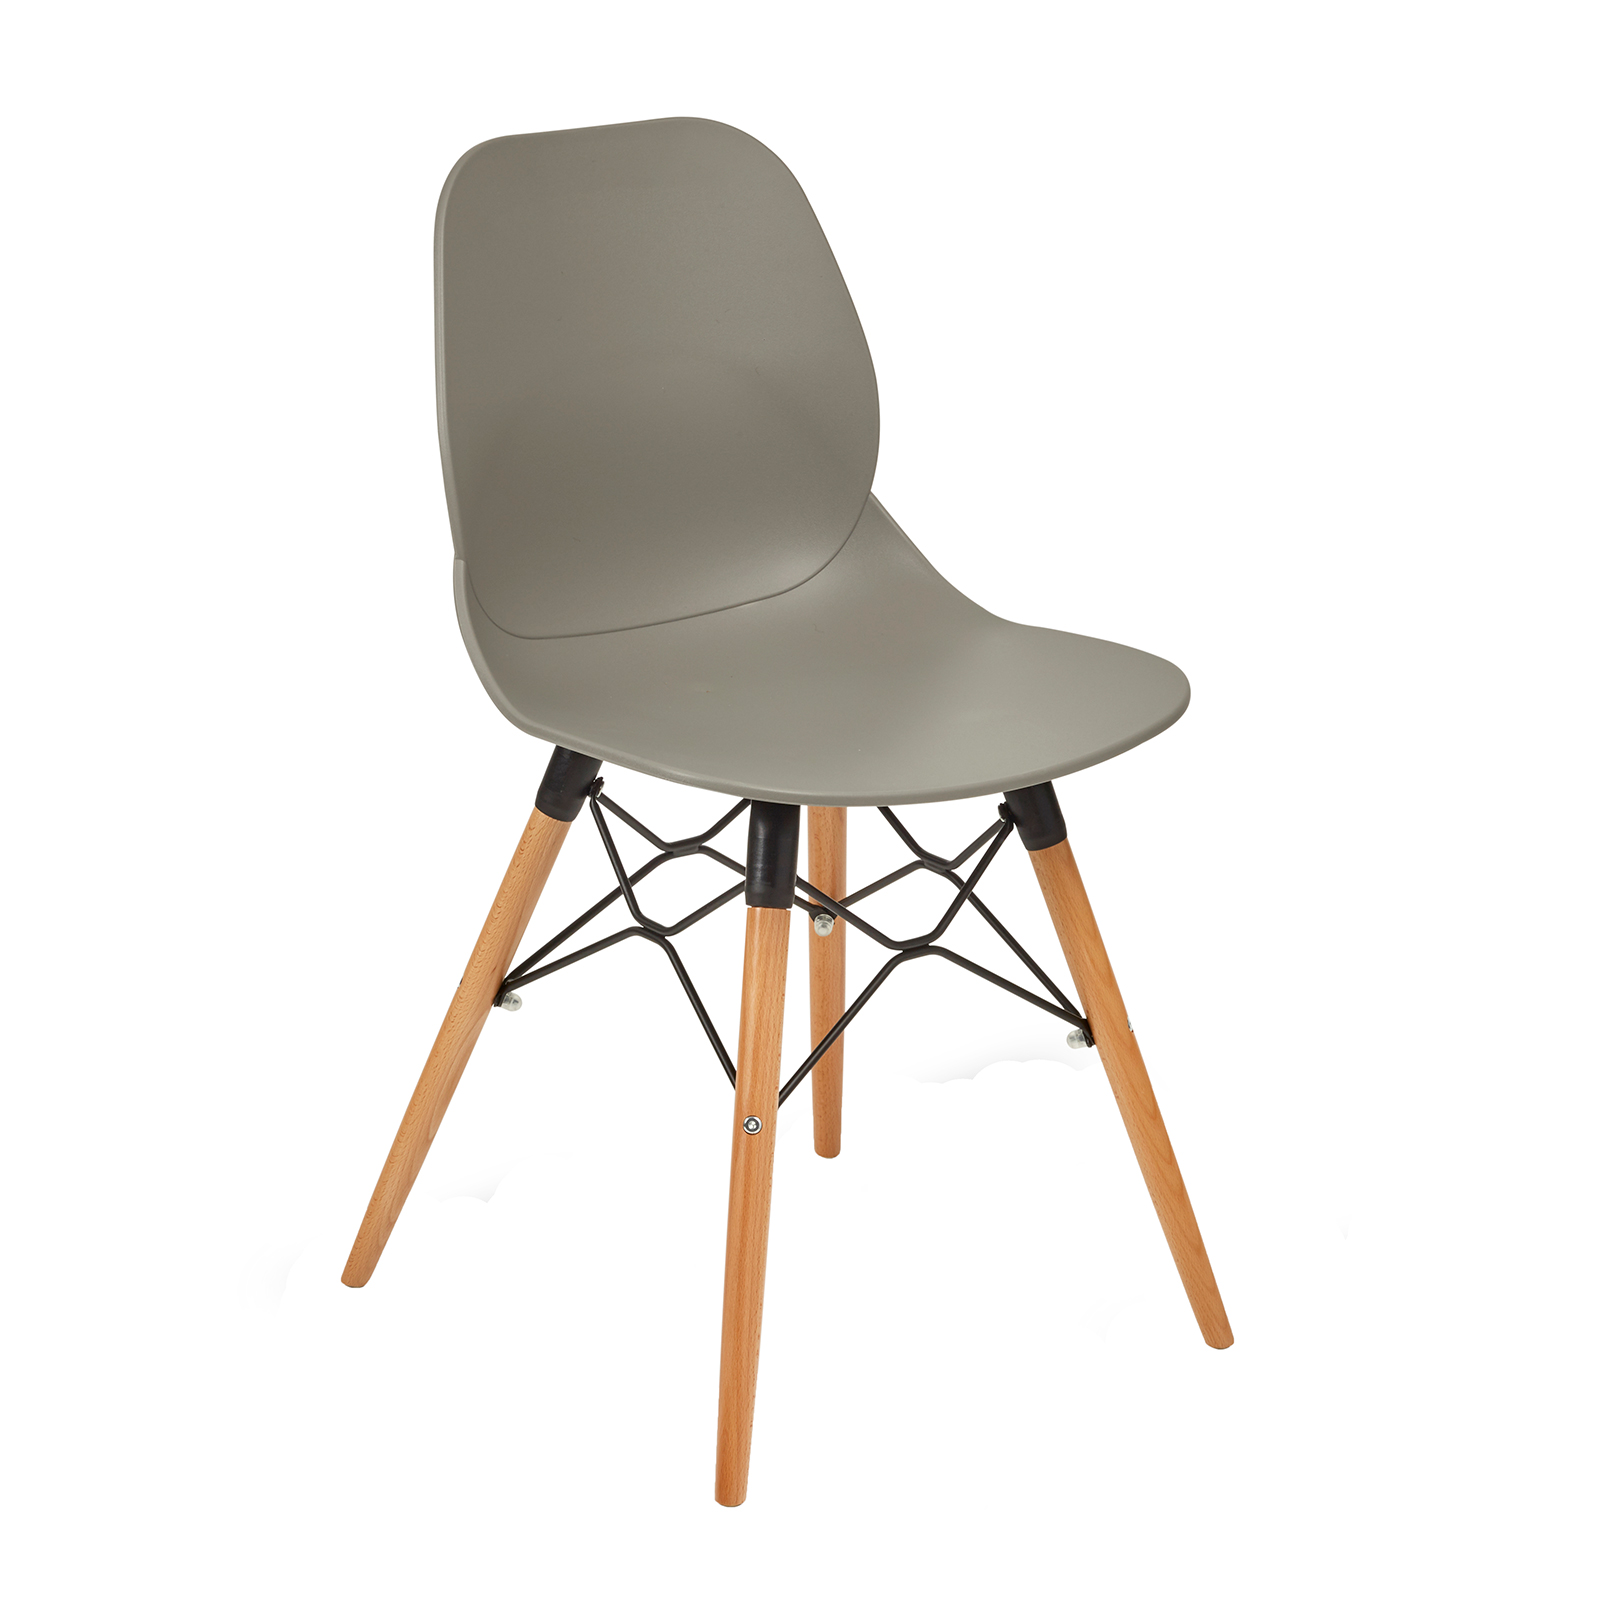 Strut multi-purpose chair with wooden frame